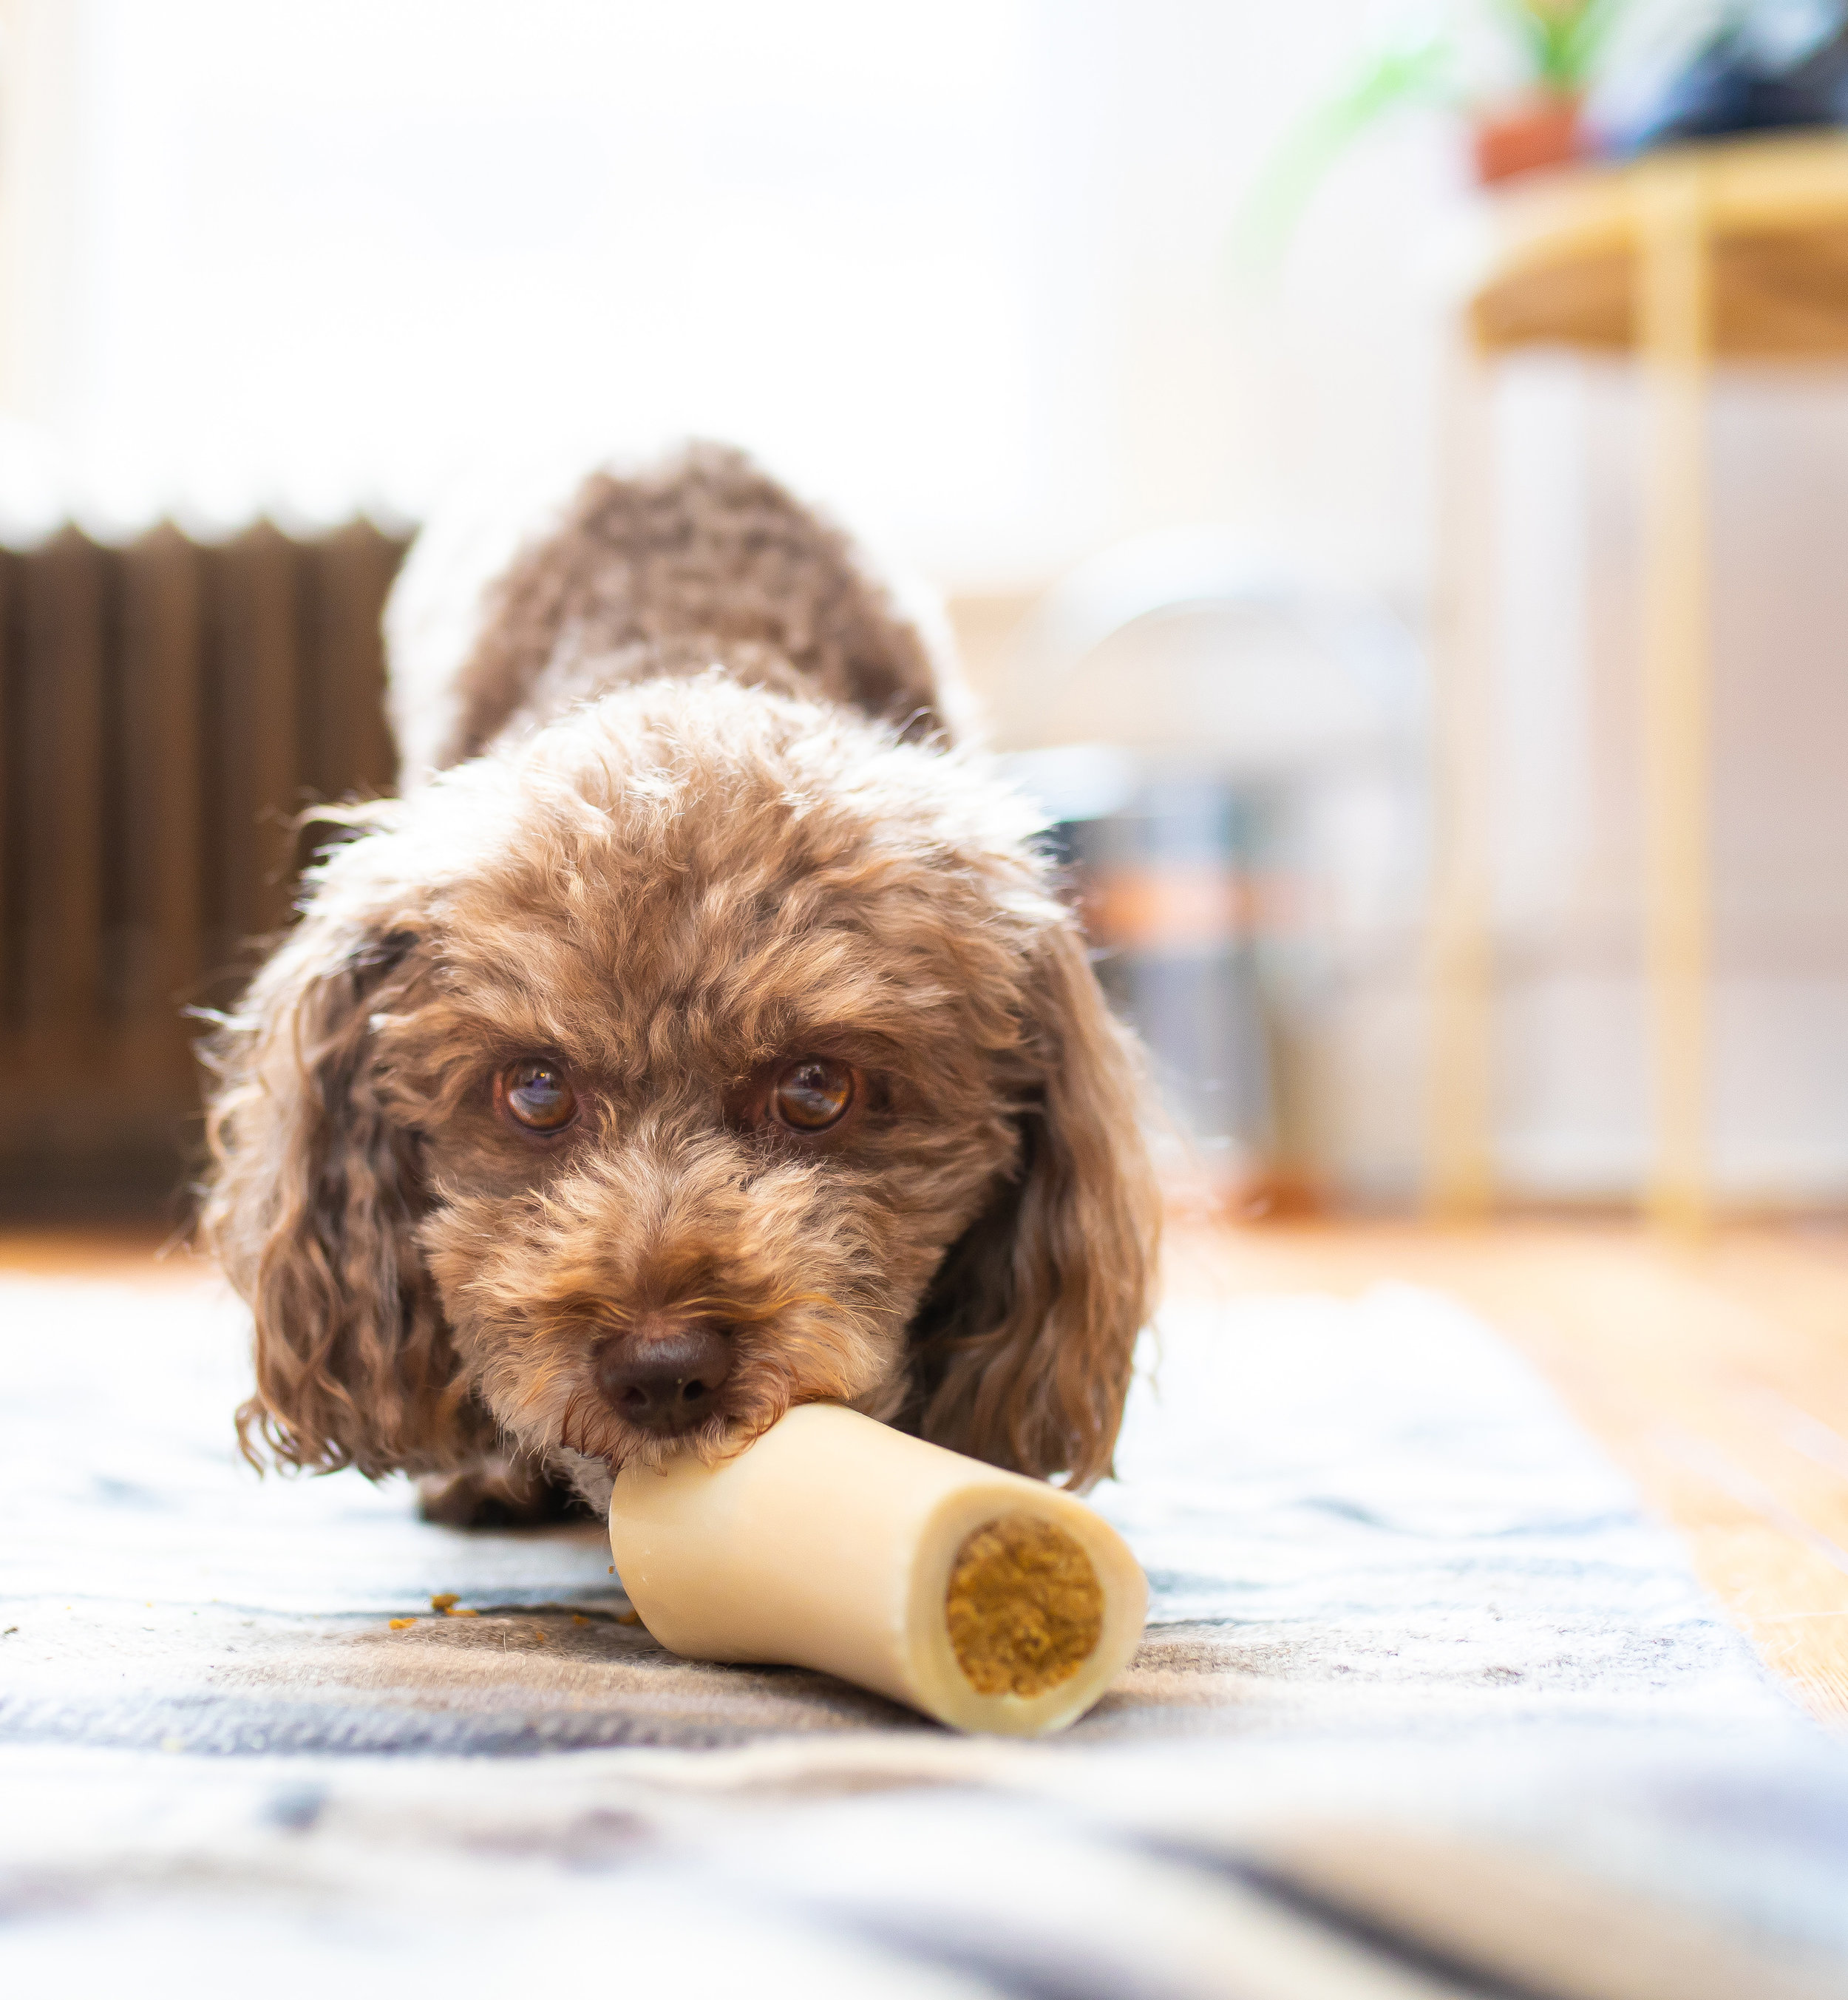 refillable with your pup's favorite snacks for an even longer lasting chew -